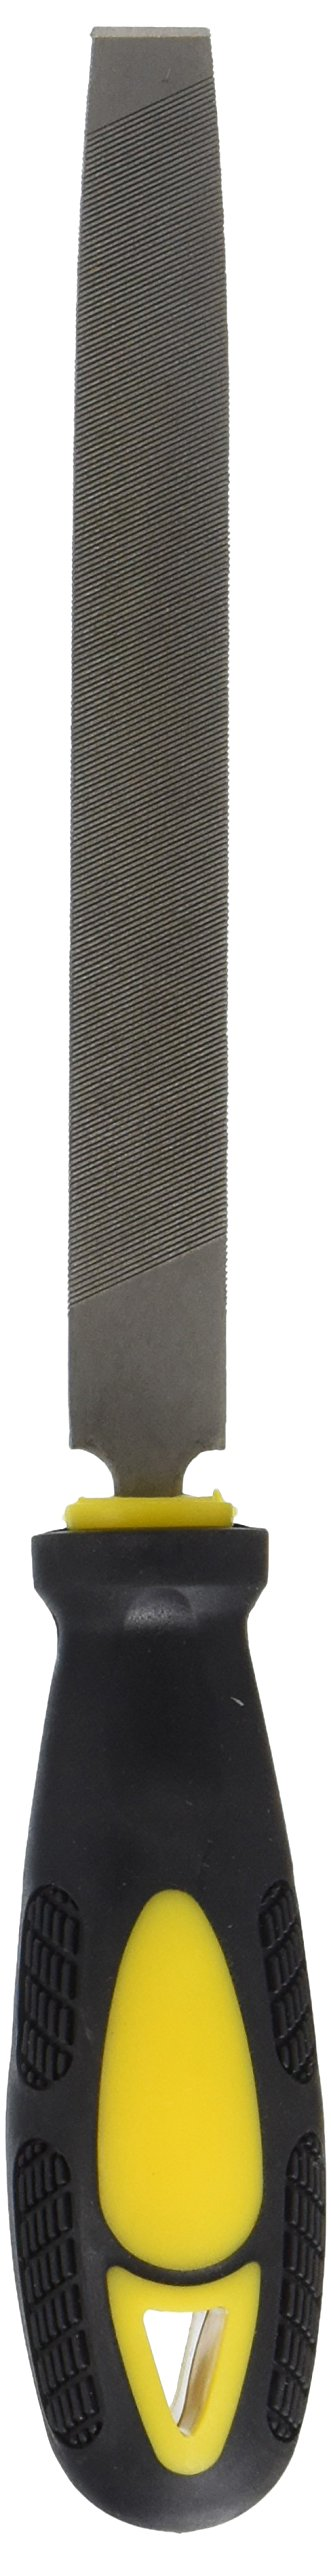 KC Professional 93970 Monster Mill File, 6''